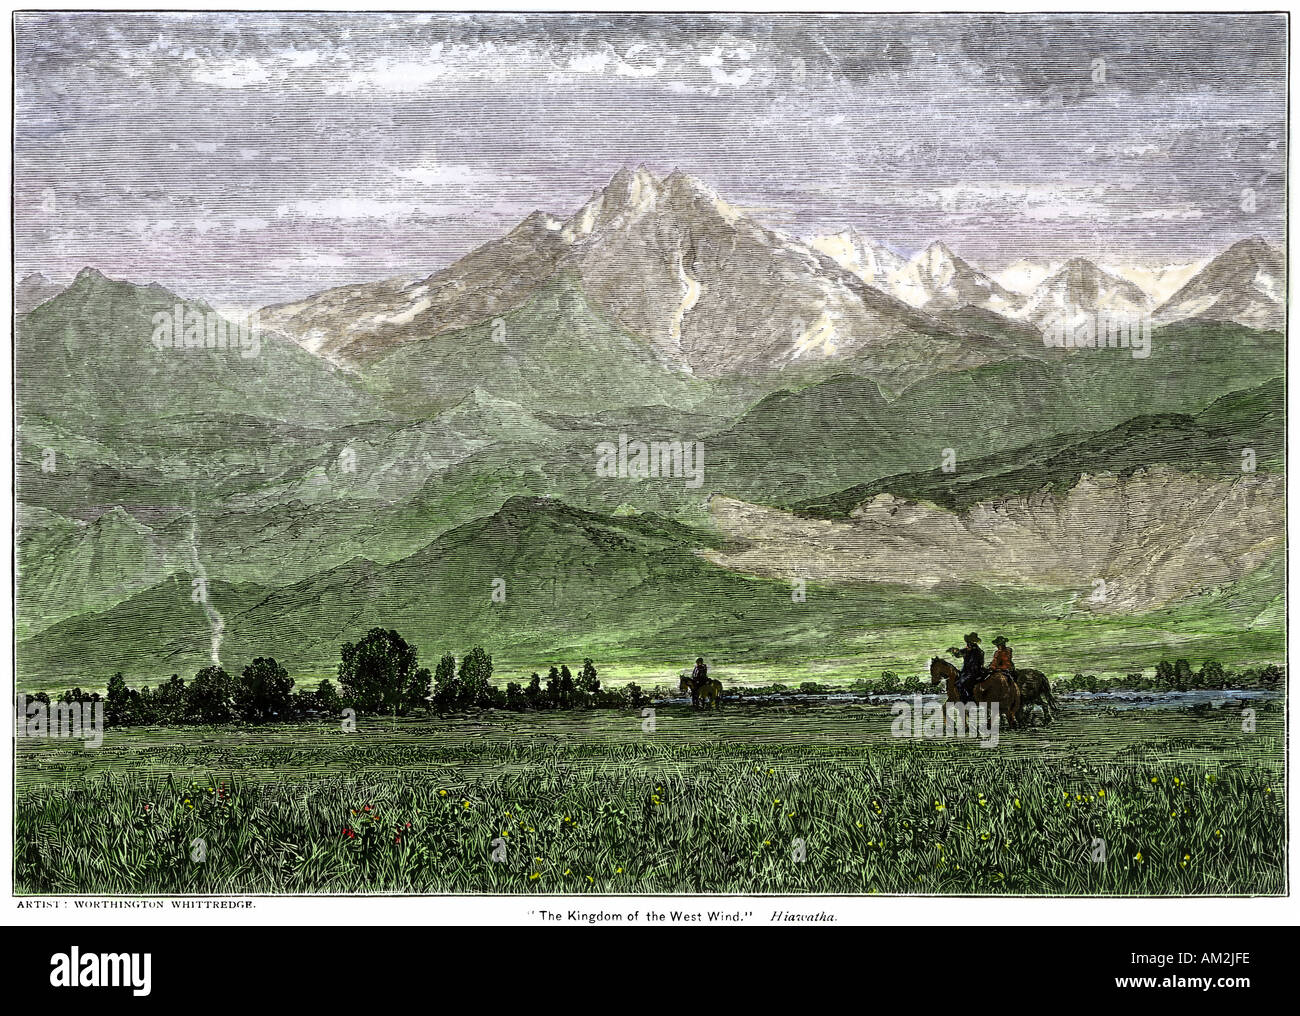 Rocky Mountains with horseback riders in a valley - Stock Image